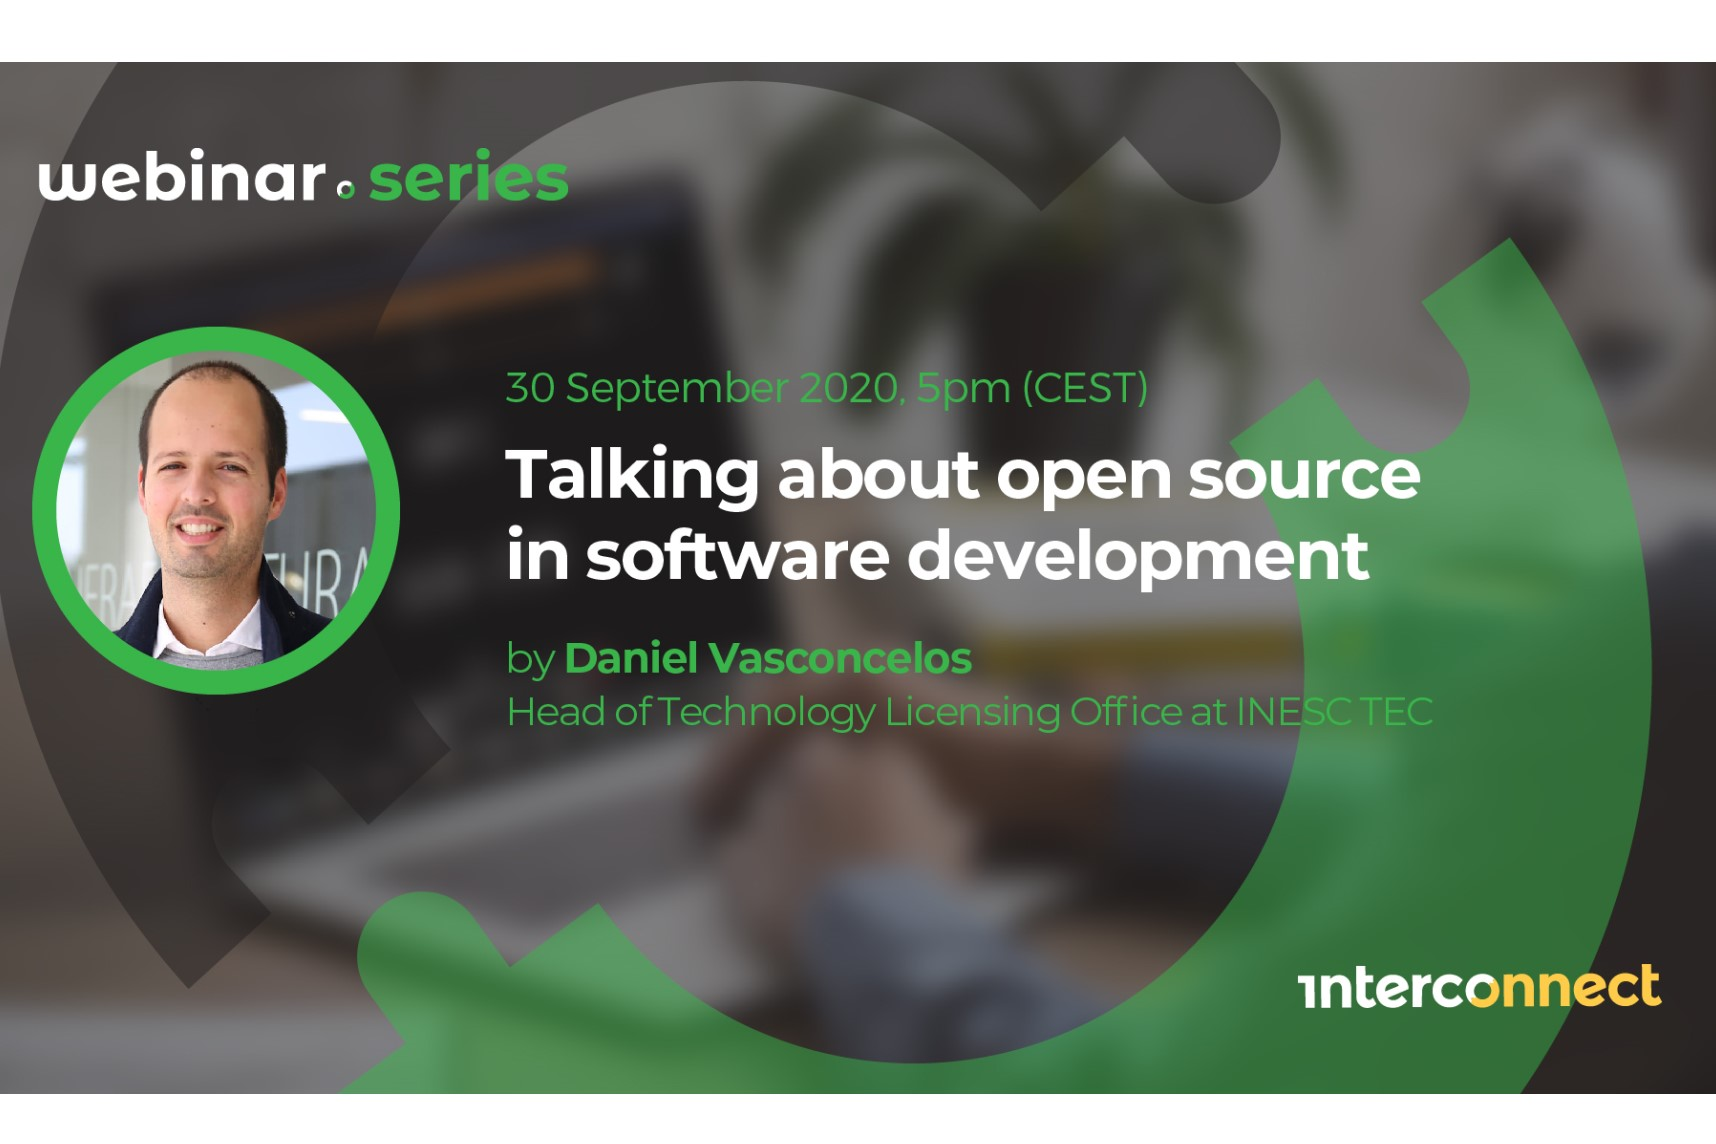 InterConnect Webinar Series #1 Talking about open source in software development